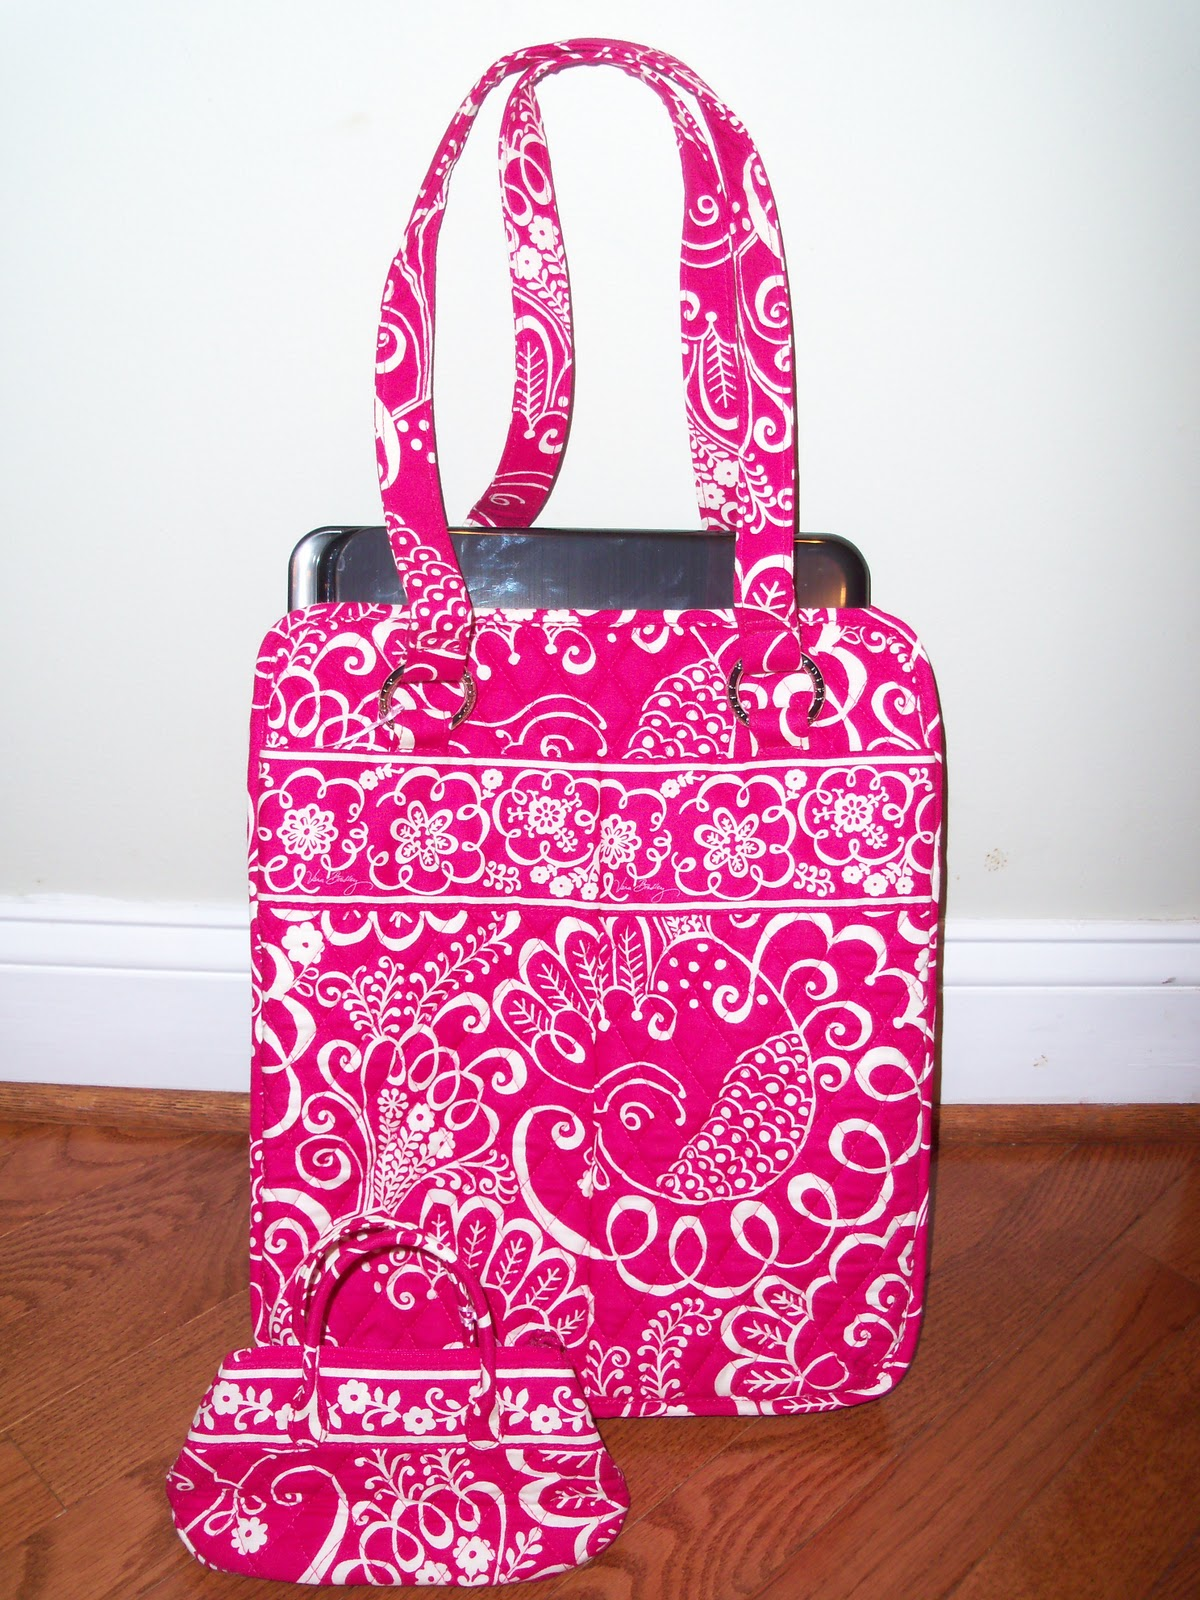 Review: Vera Bradley Twirly Birds Pink Bags Give Back